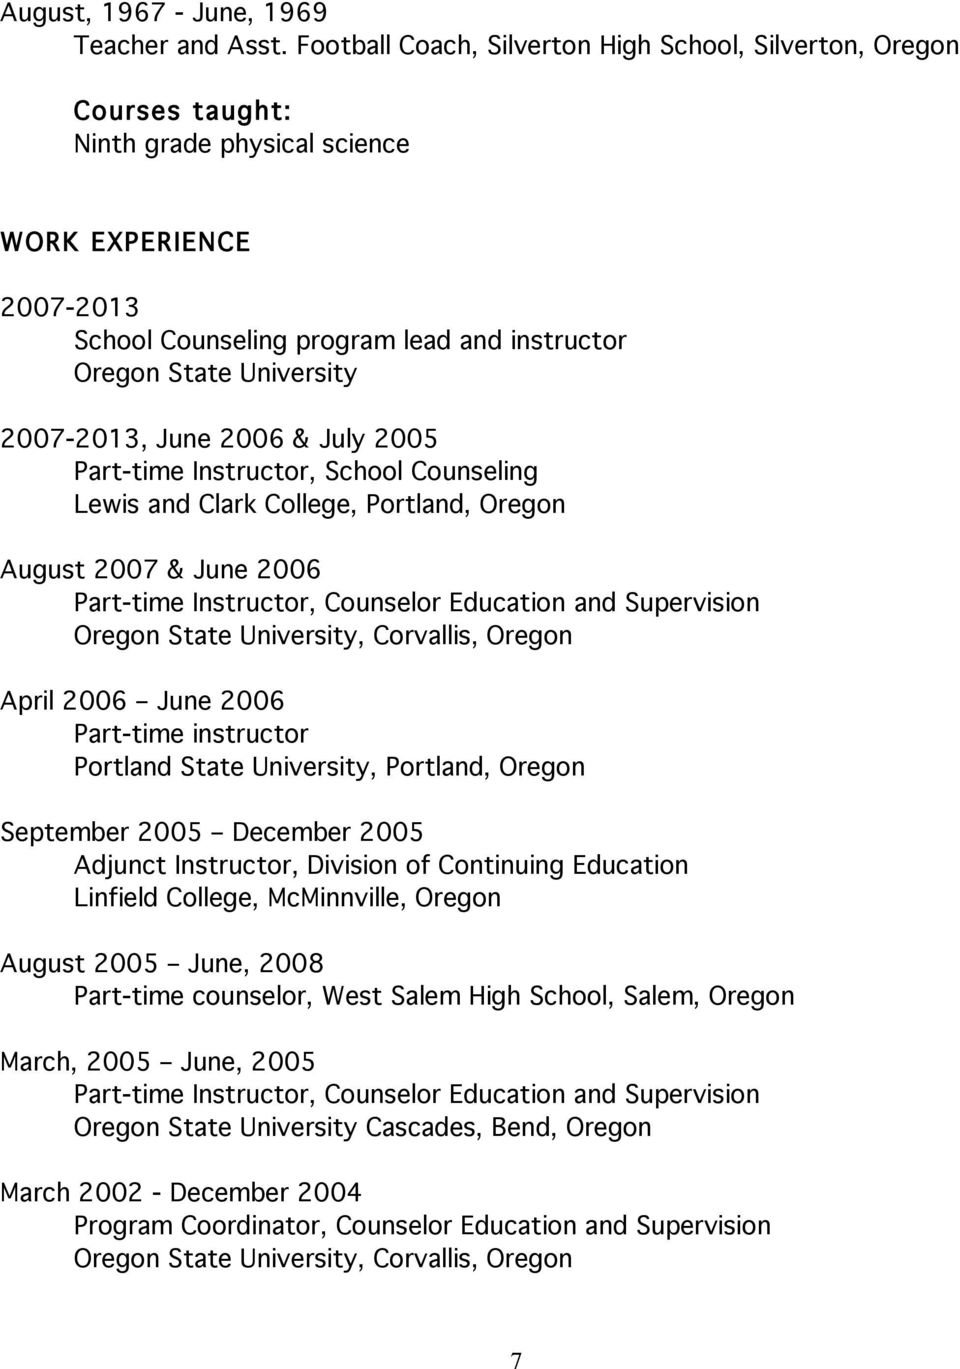 2006 & July 2005 Part-time Instructor, School Counseling Lewis and Clark College, Portland, Oregon August 2007 & June 2006 Part-time Instructor, Counselor Education and Supervision Oregon State